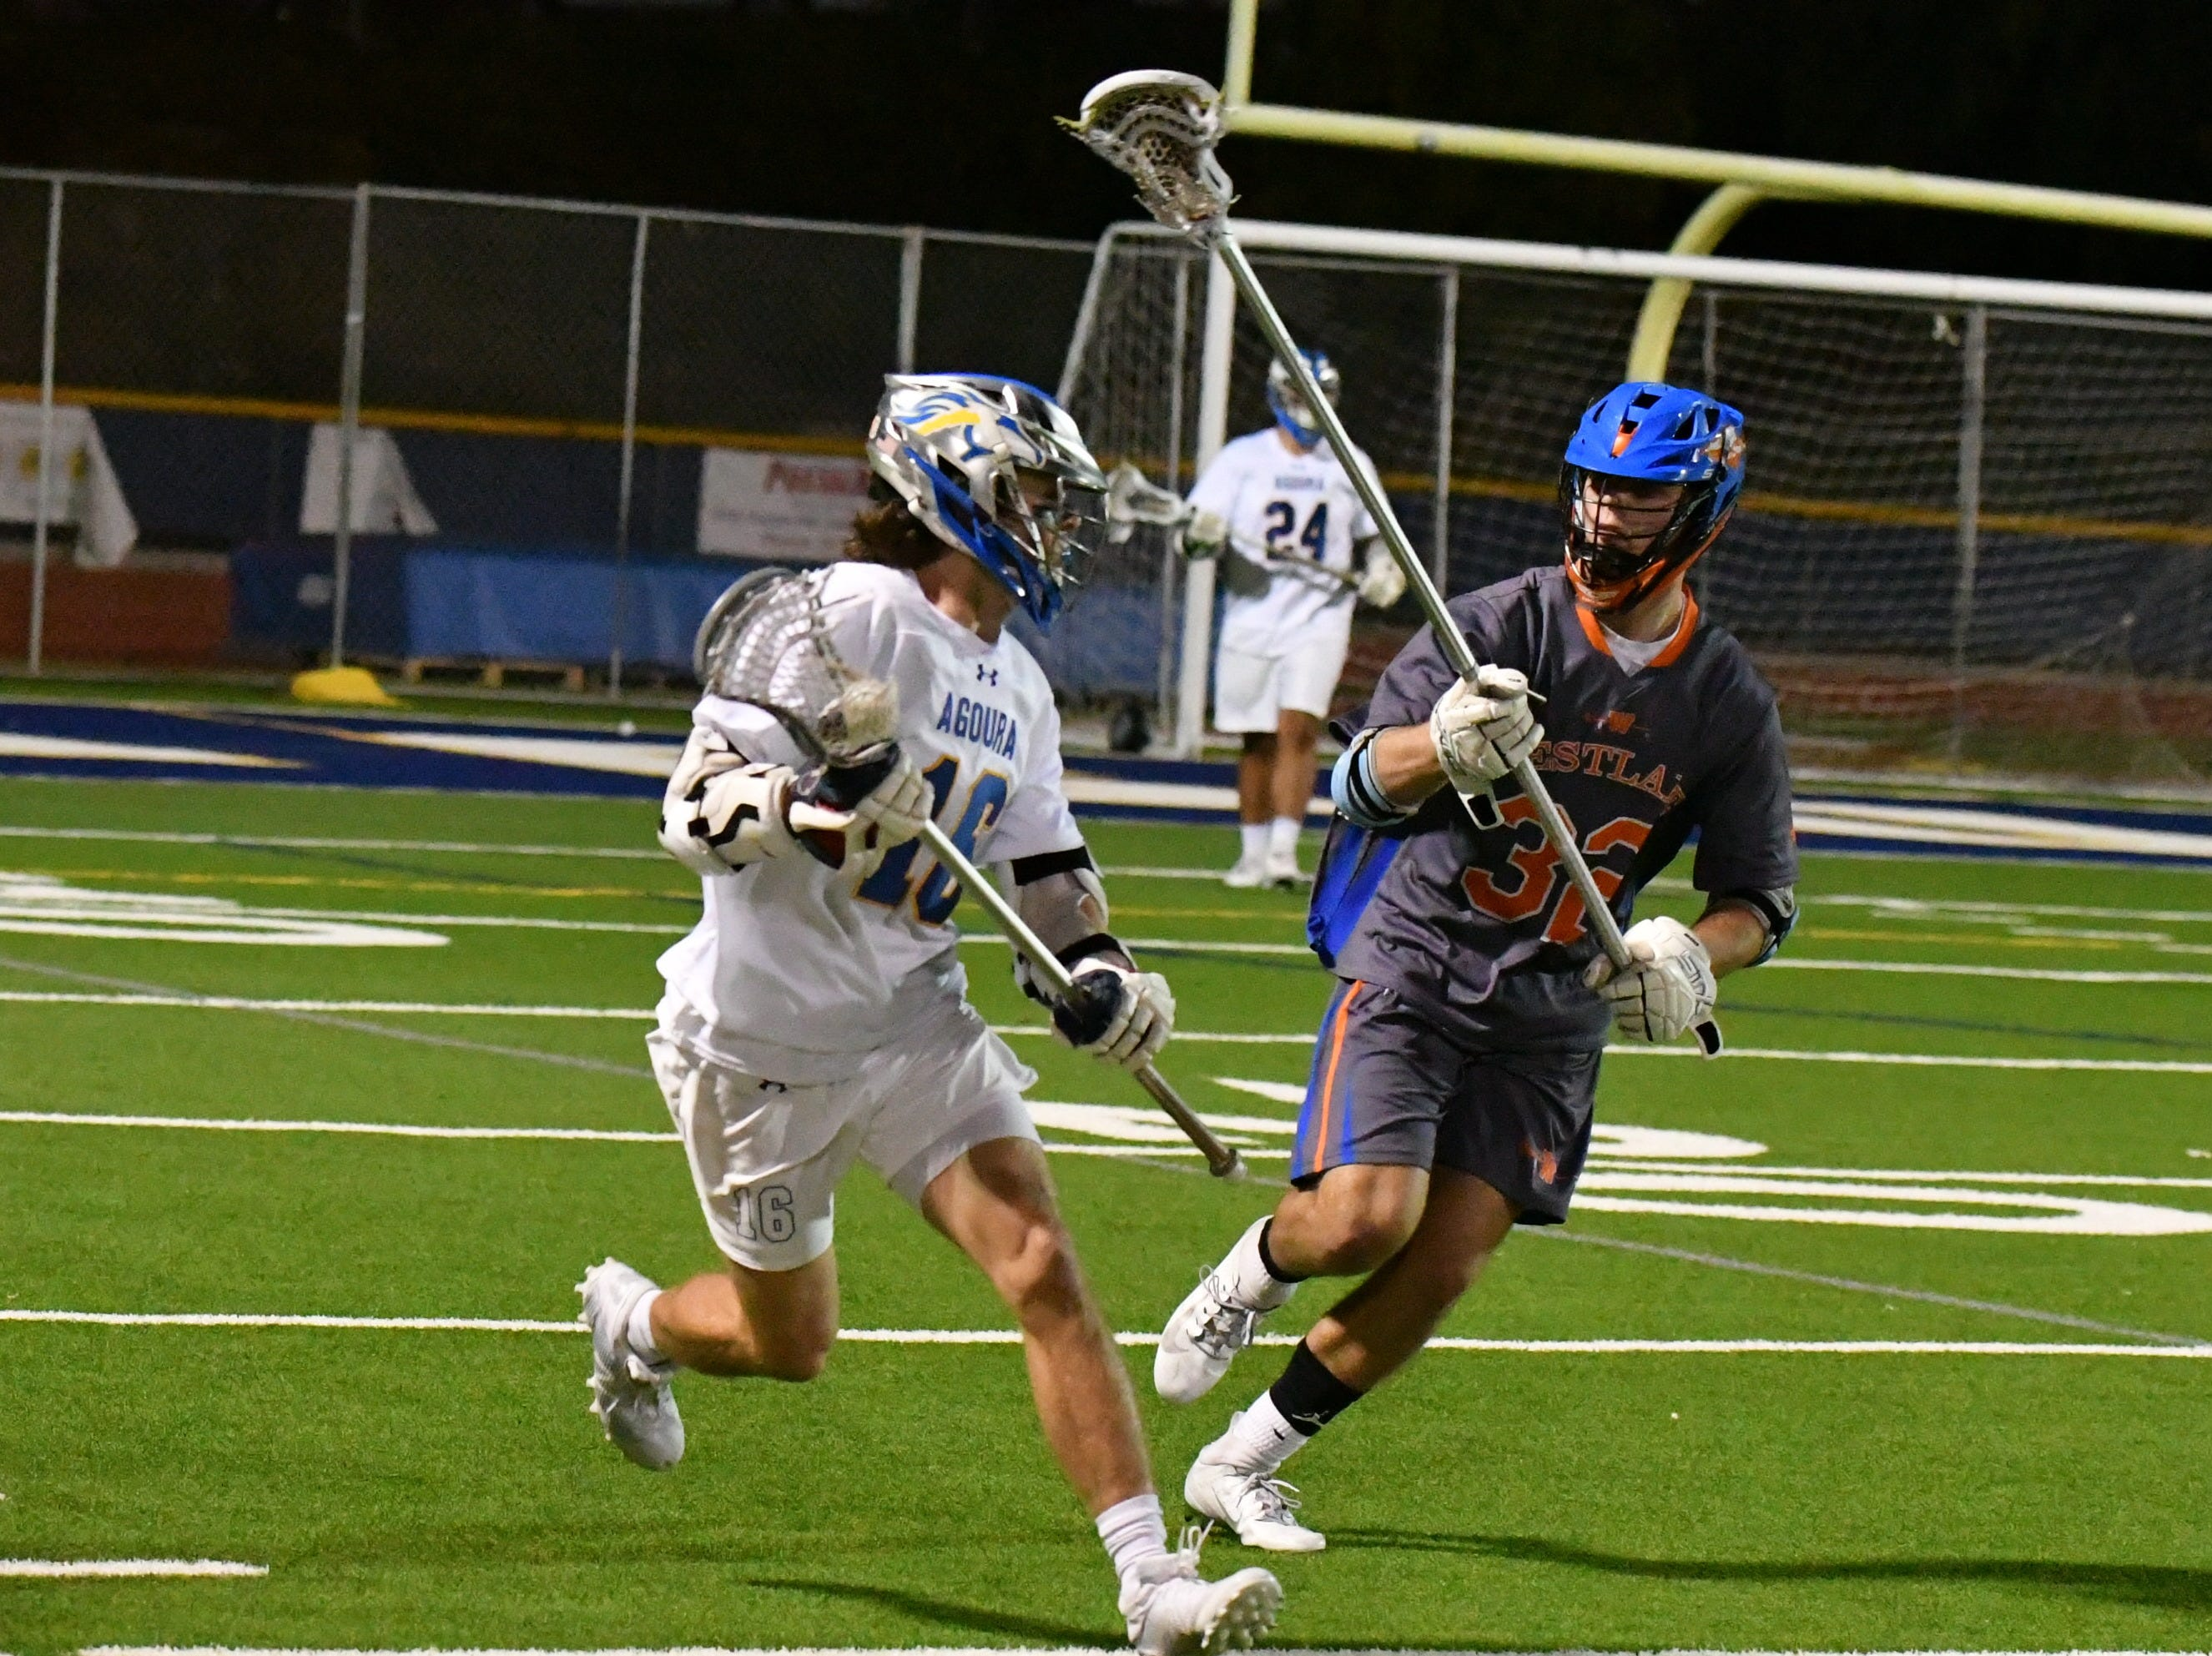 Agoura attackman Dougie McCarthy is chased by Westlake High defender Will Lyman at Agoura High on March 8. The Chargers won, 12-8.